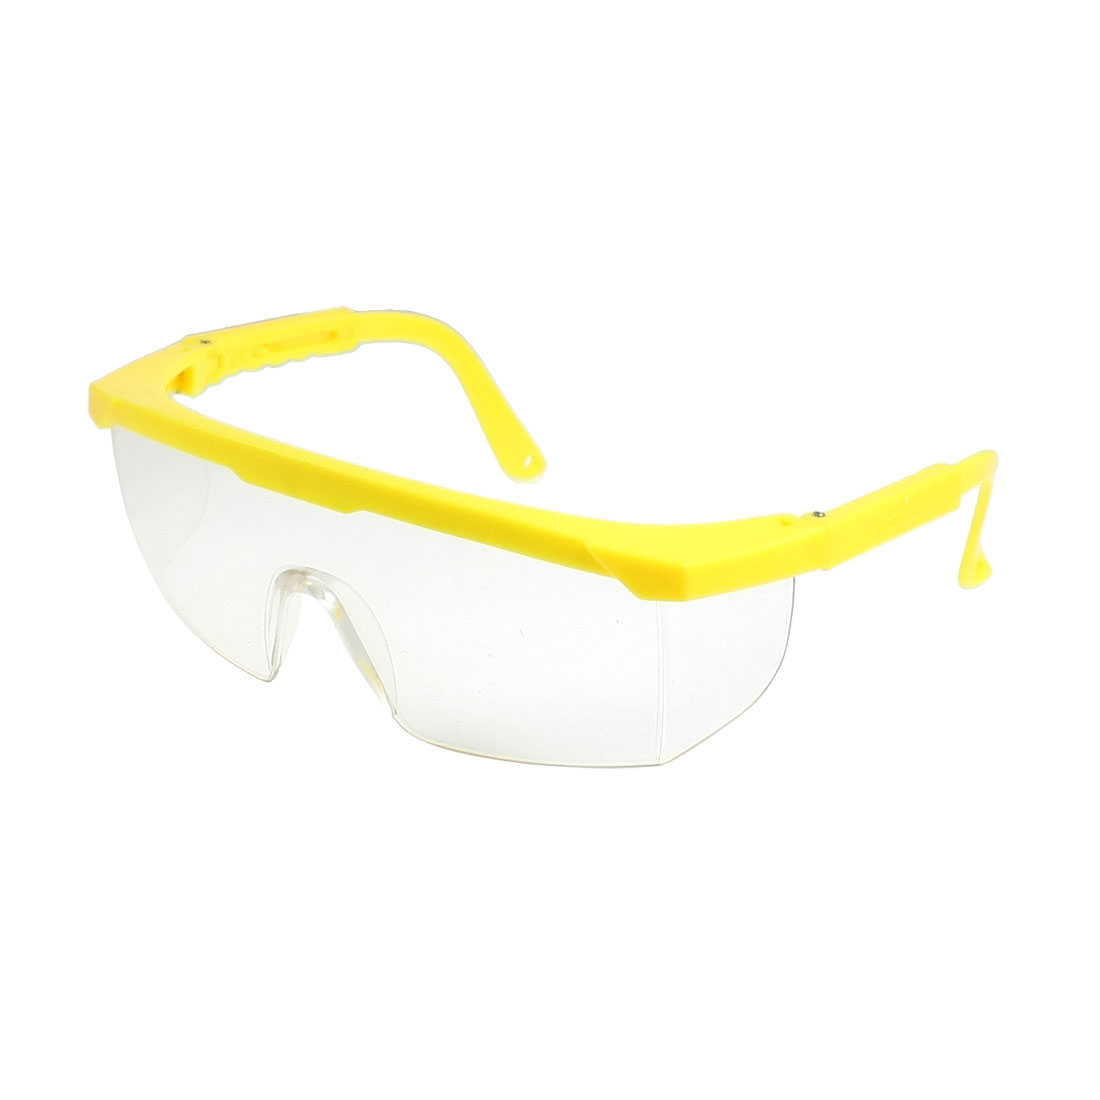 Clear Uni Lens Retractable Arms Safety Goggles for Men Women